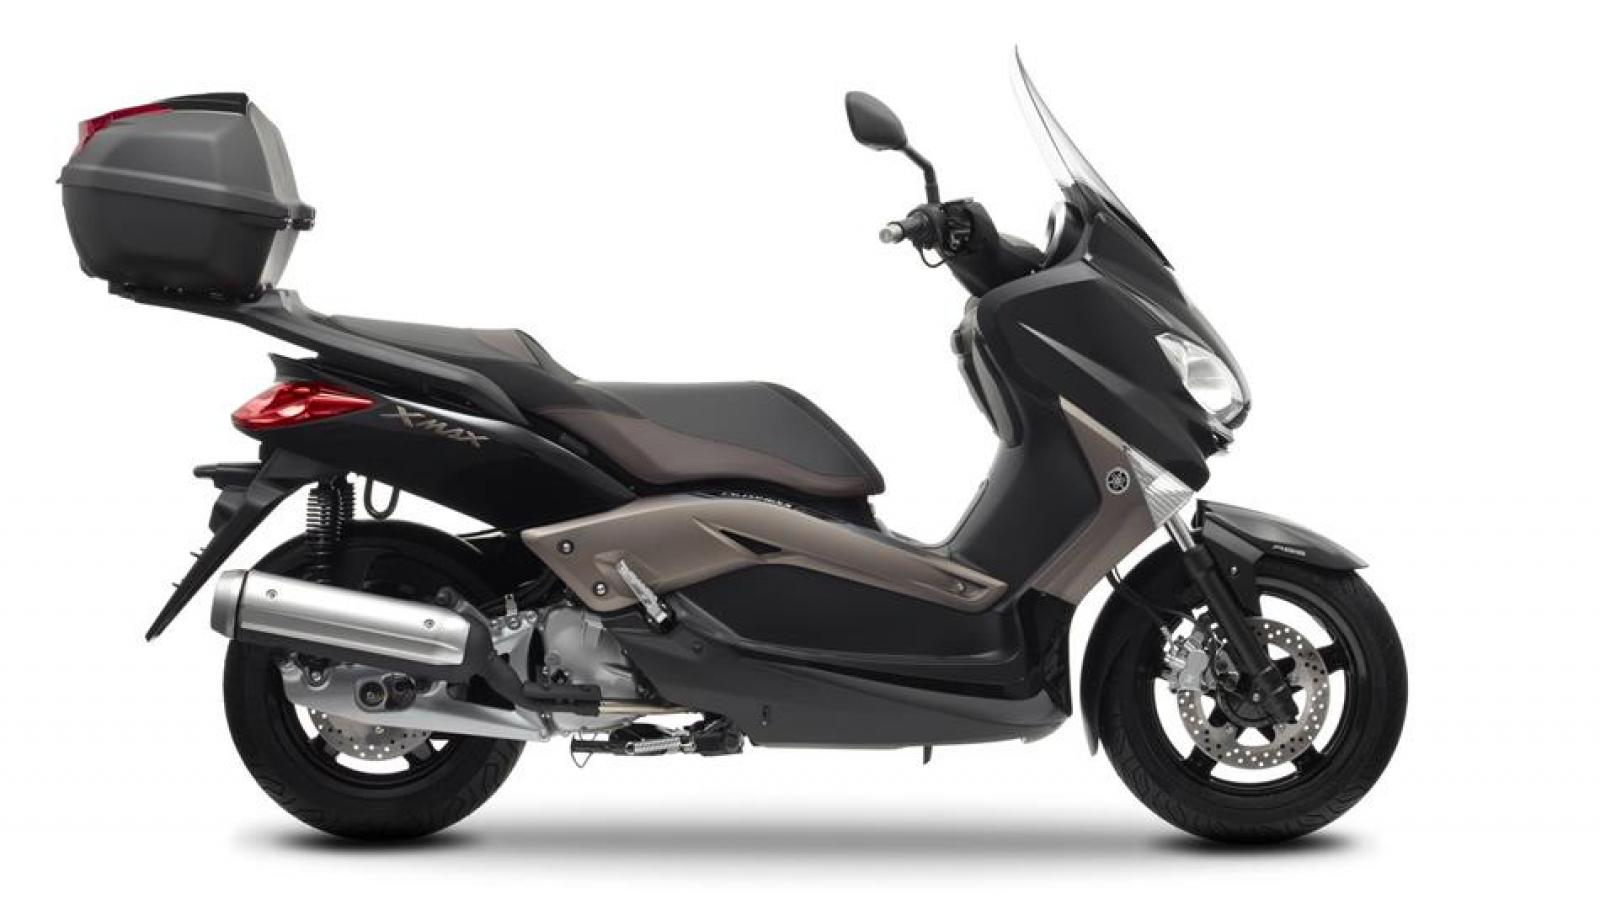 yamaha yamaha x max 125 abs business moto zombdrive com. Black Bedroom Furniture Sets. Home Design Ideas